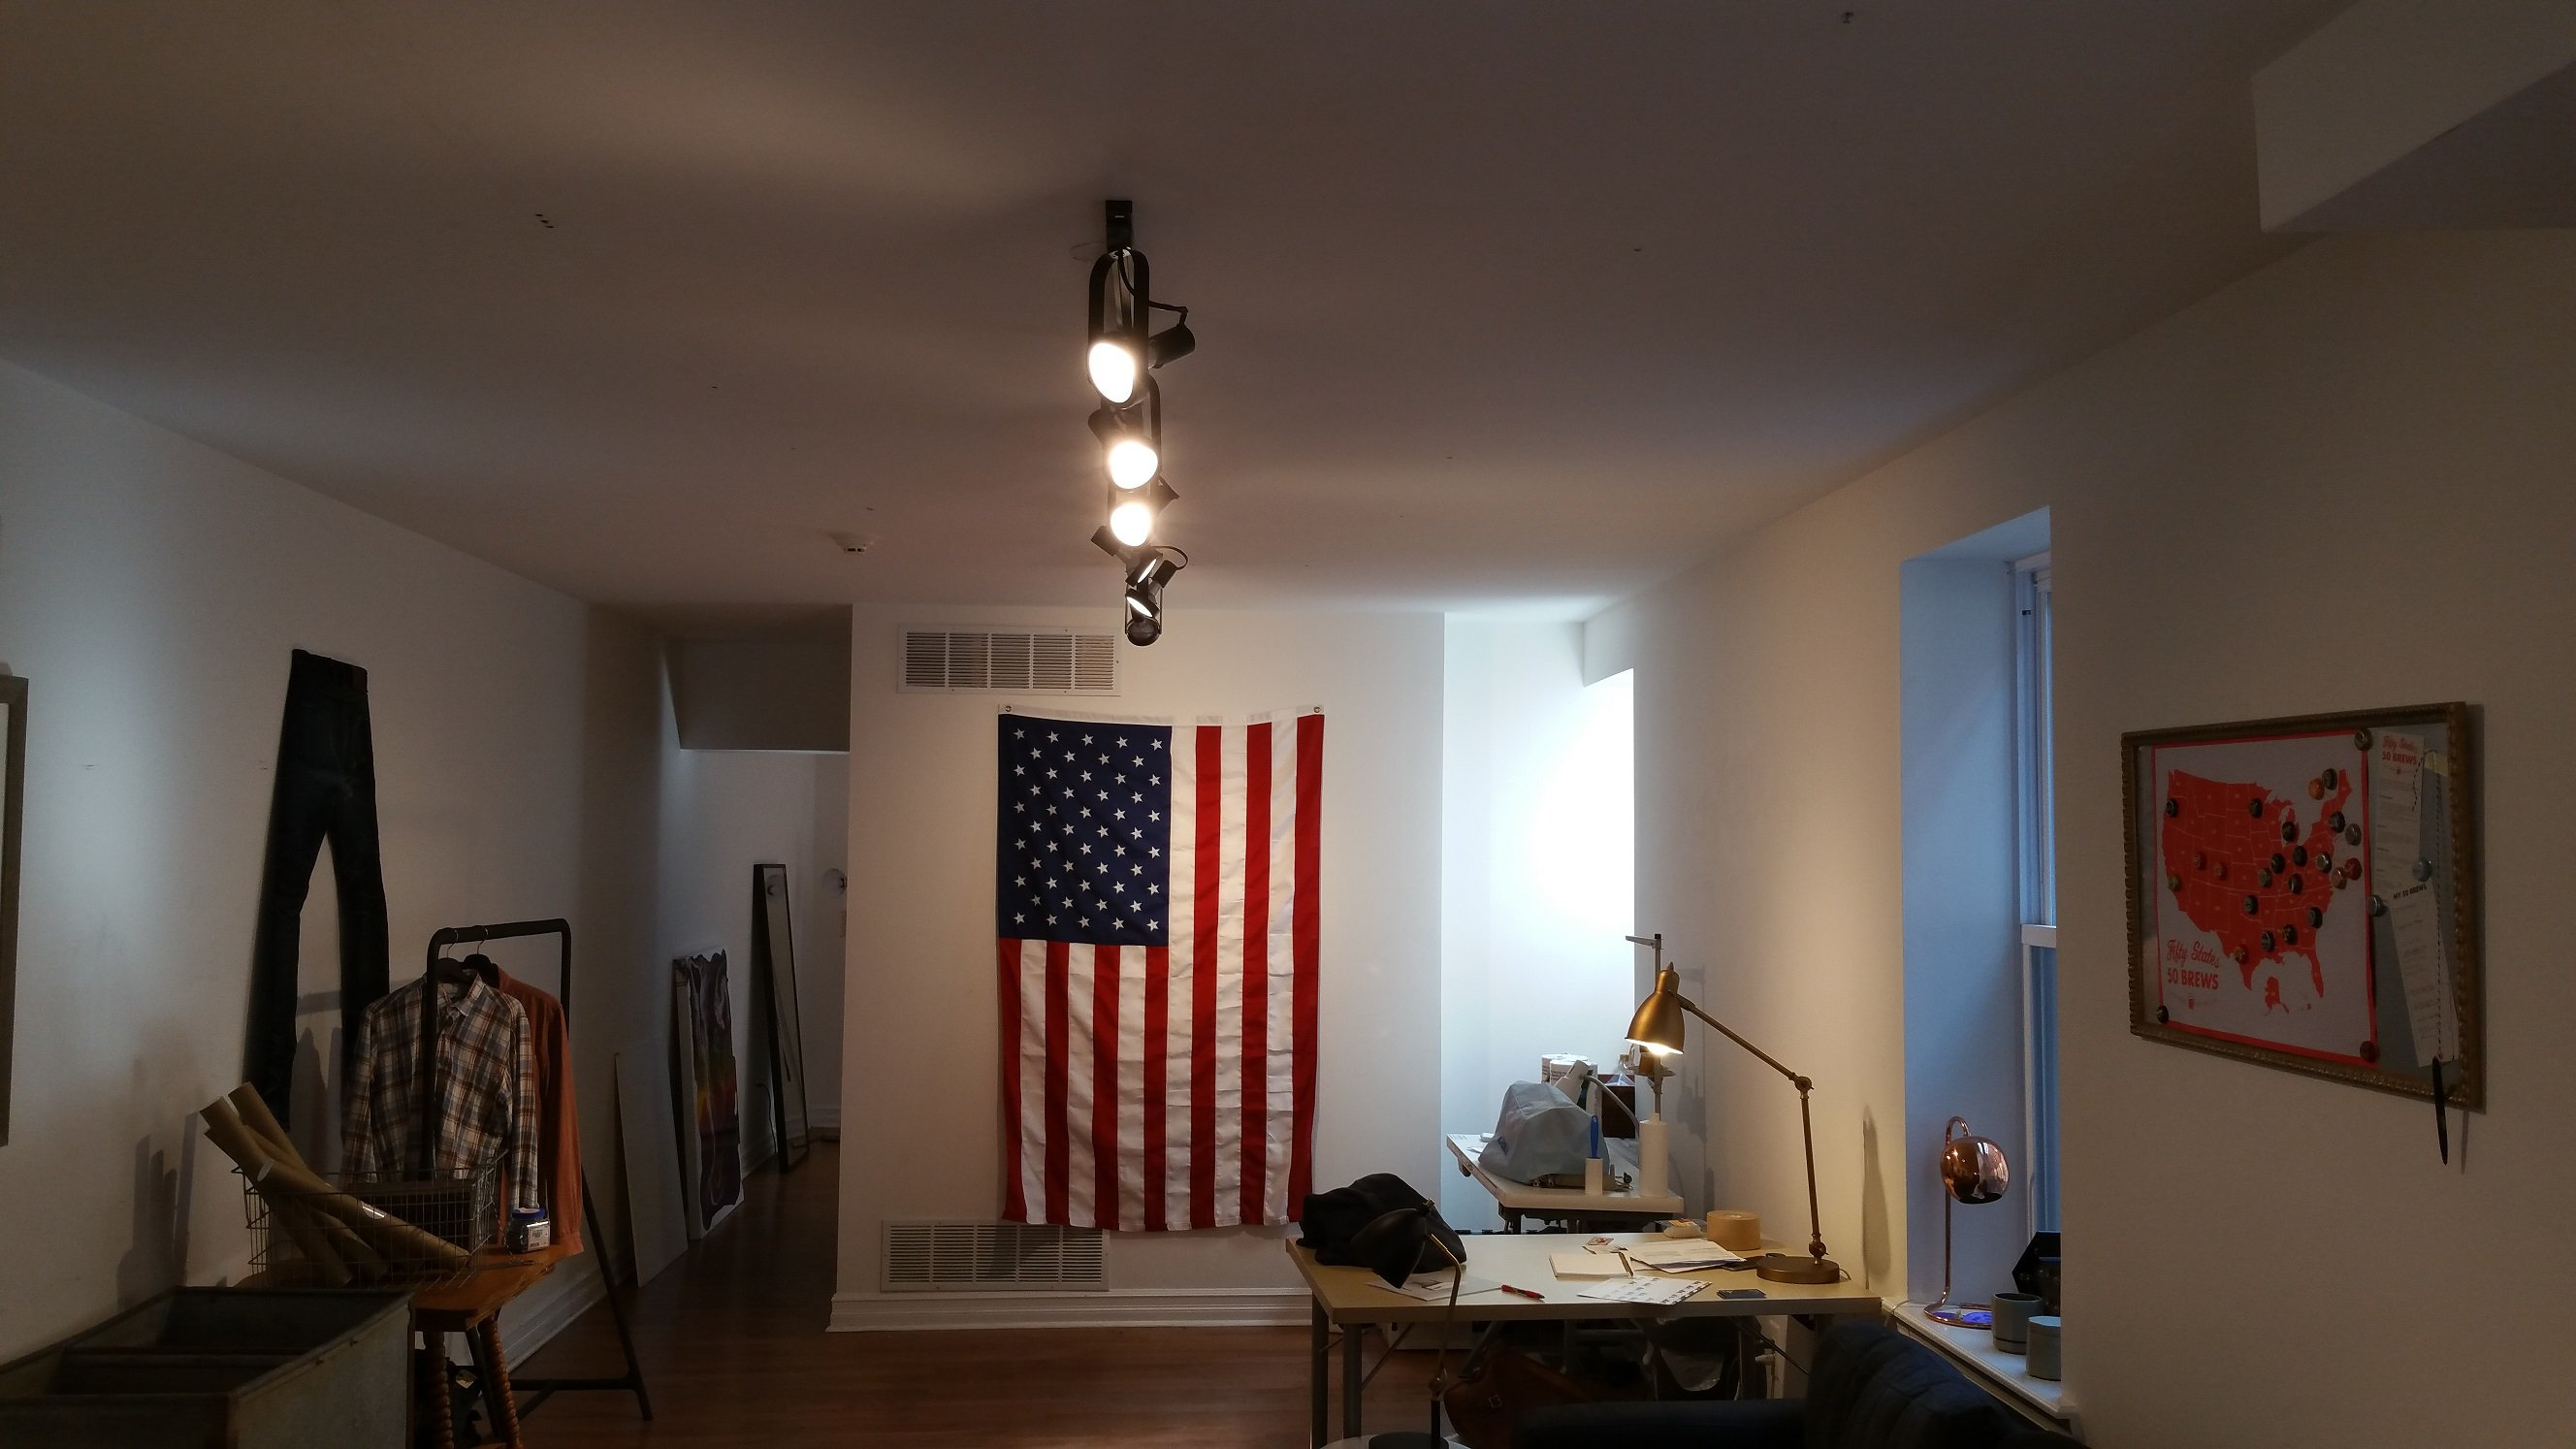 tech lighting pertaining com article great cozy track regard light on led to housestclair and a of with store shot con